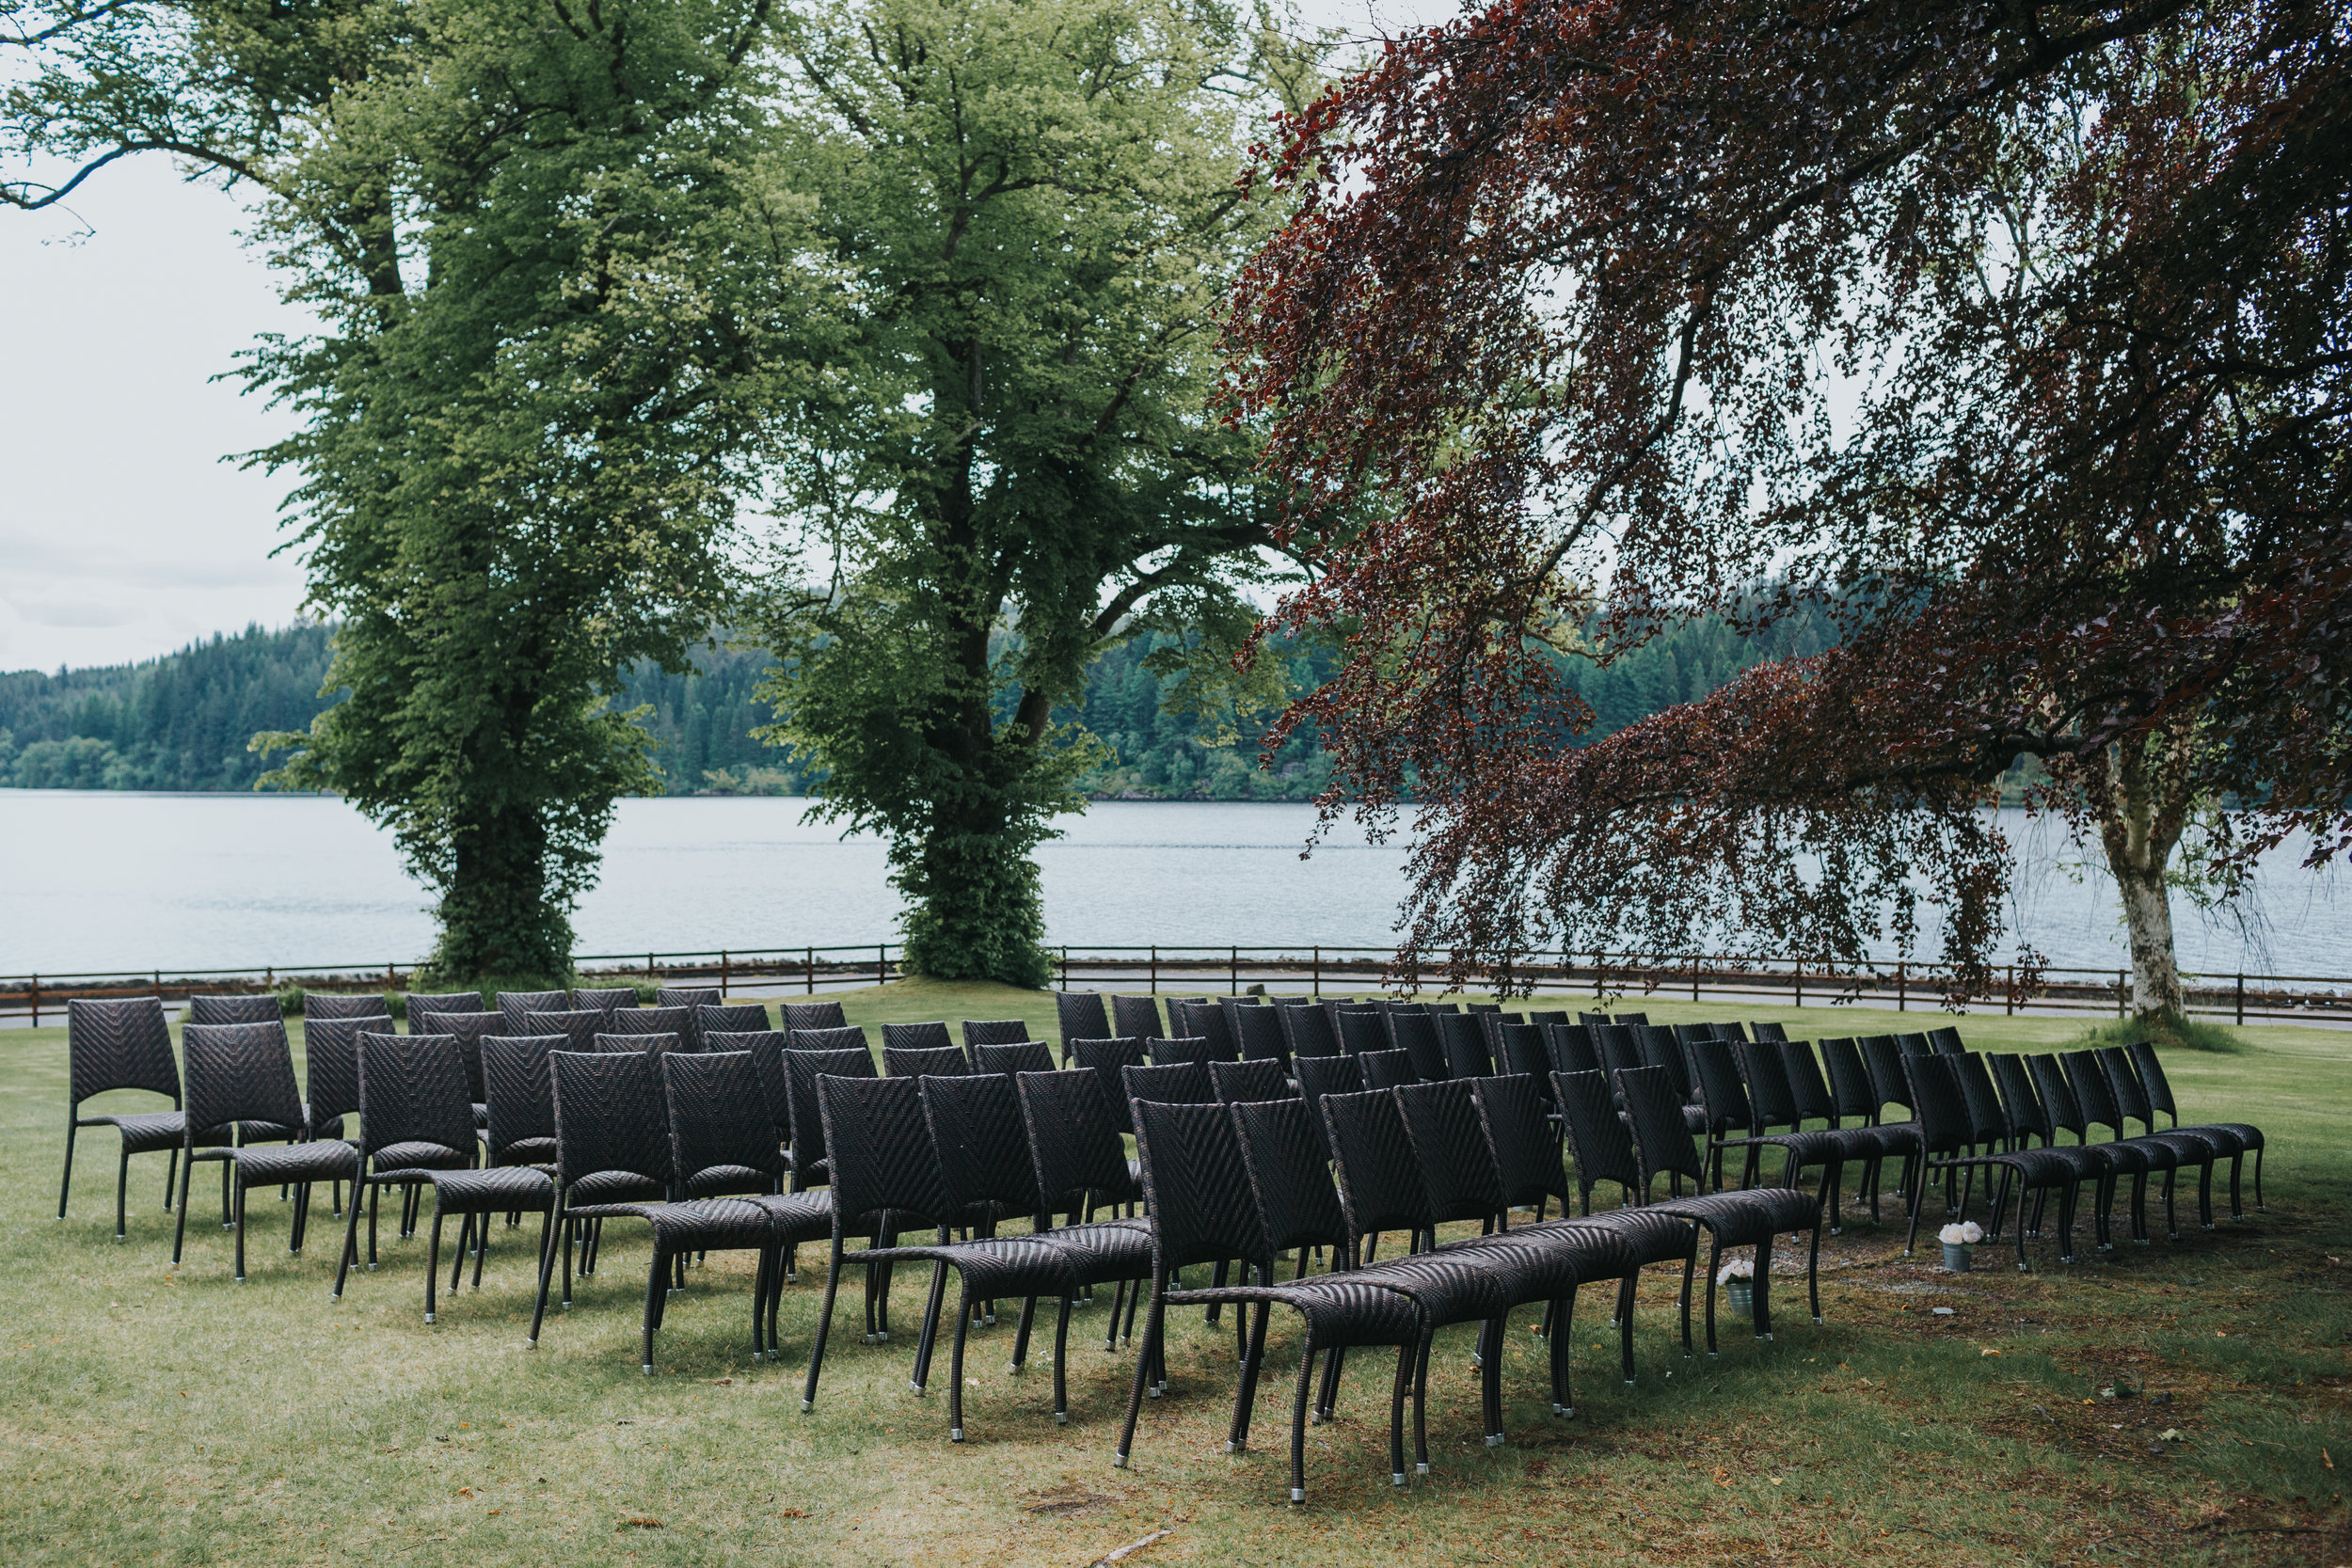 Chairs await wedding guests bottoms under The Beech Tree.